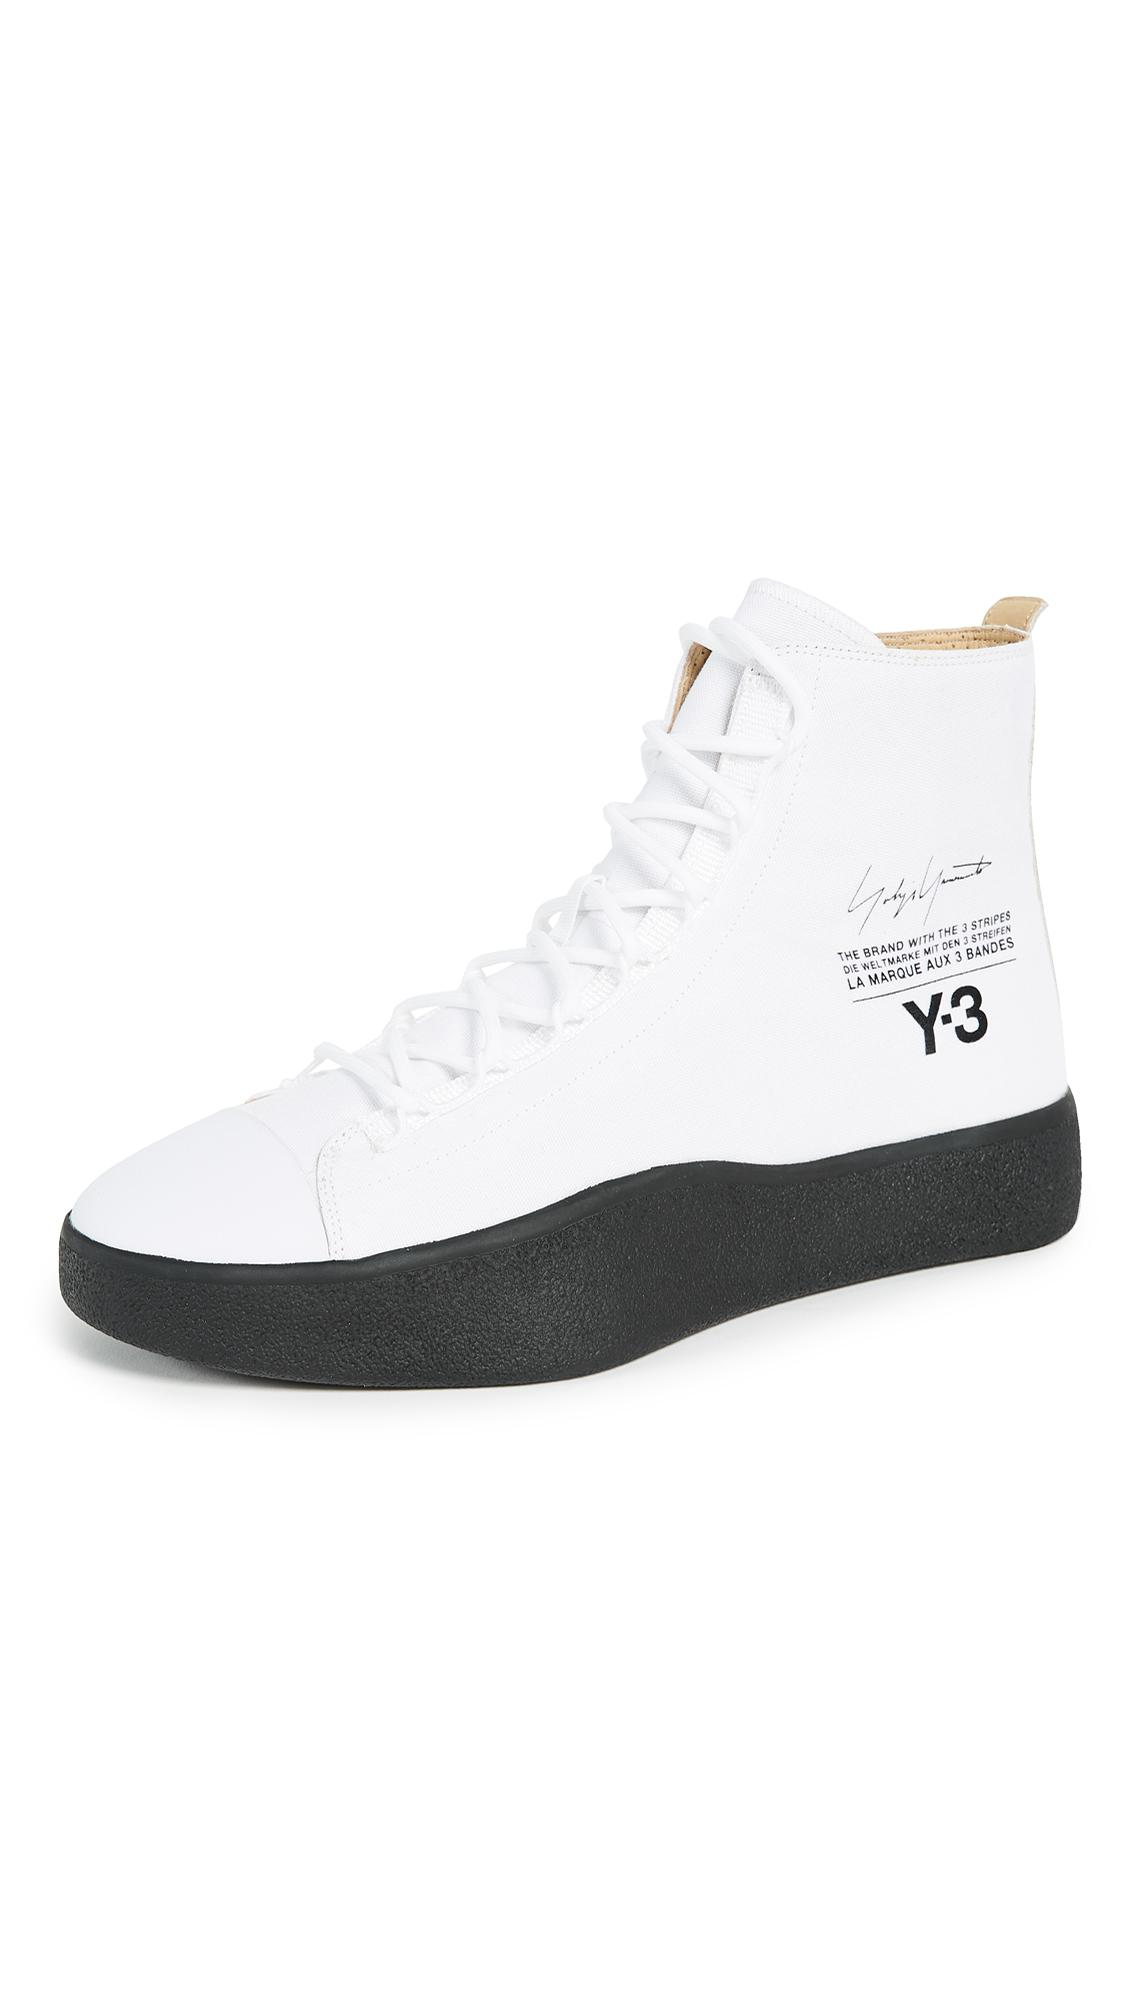 d20042d1410c Y-3 Bashyo High Top Sneakers in White for Men - Lyst